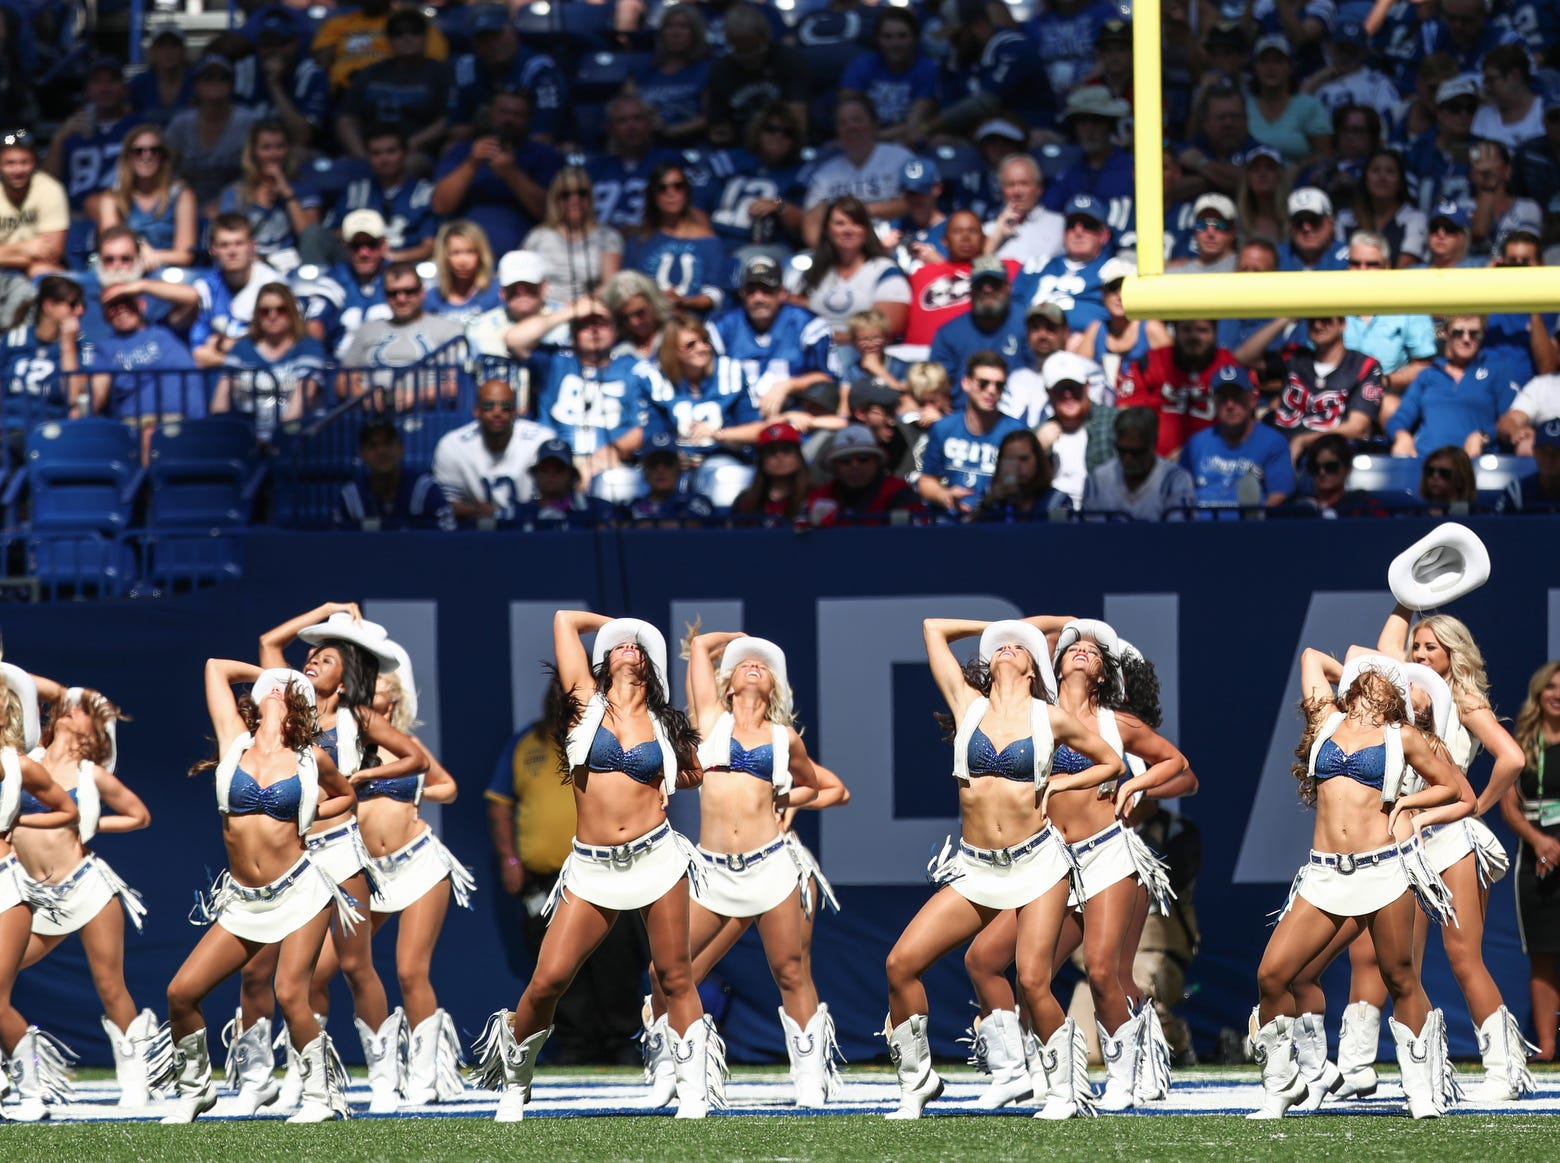 The Indianapolis Colts cheerleaders perform at Lucas Oil Stadium on Sunday, Sept. 30, 2018.